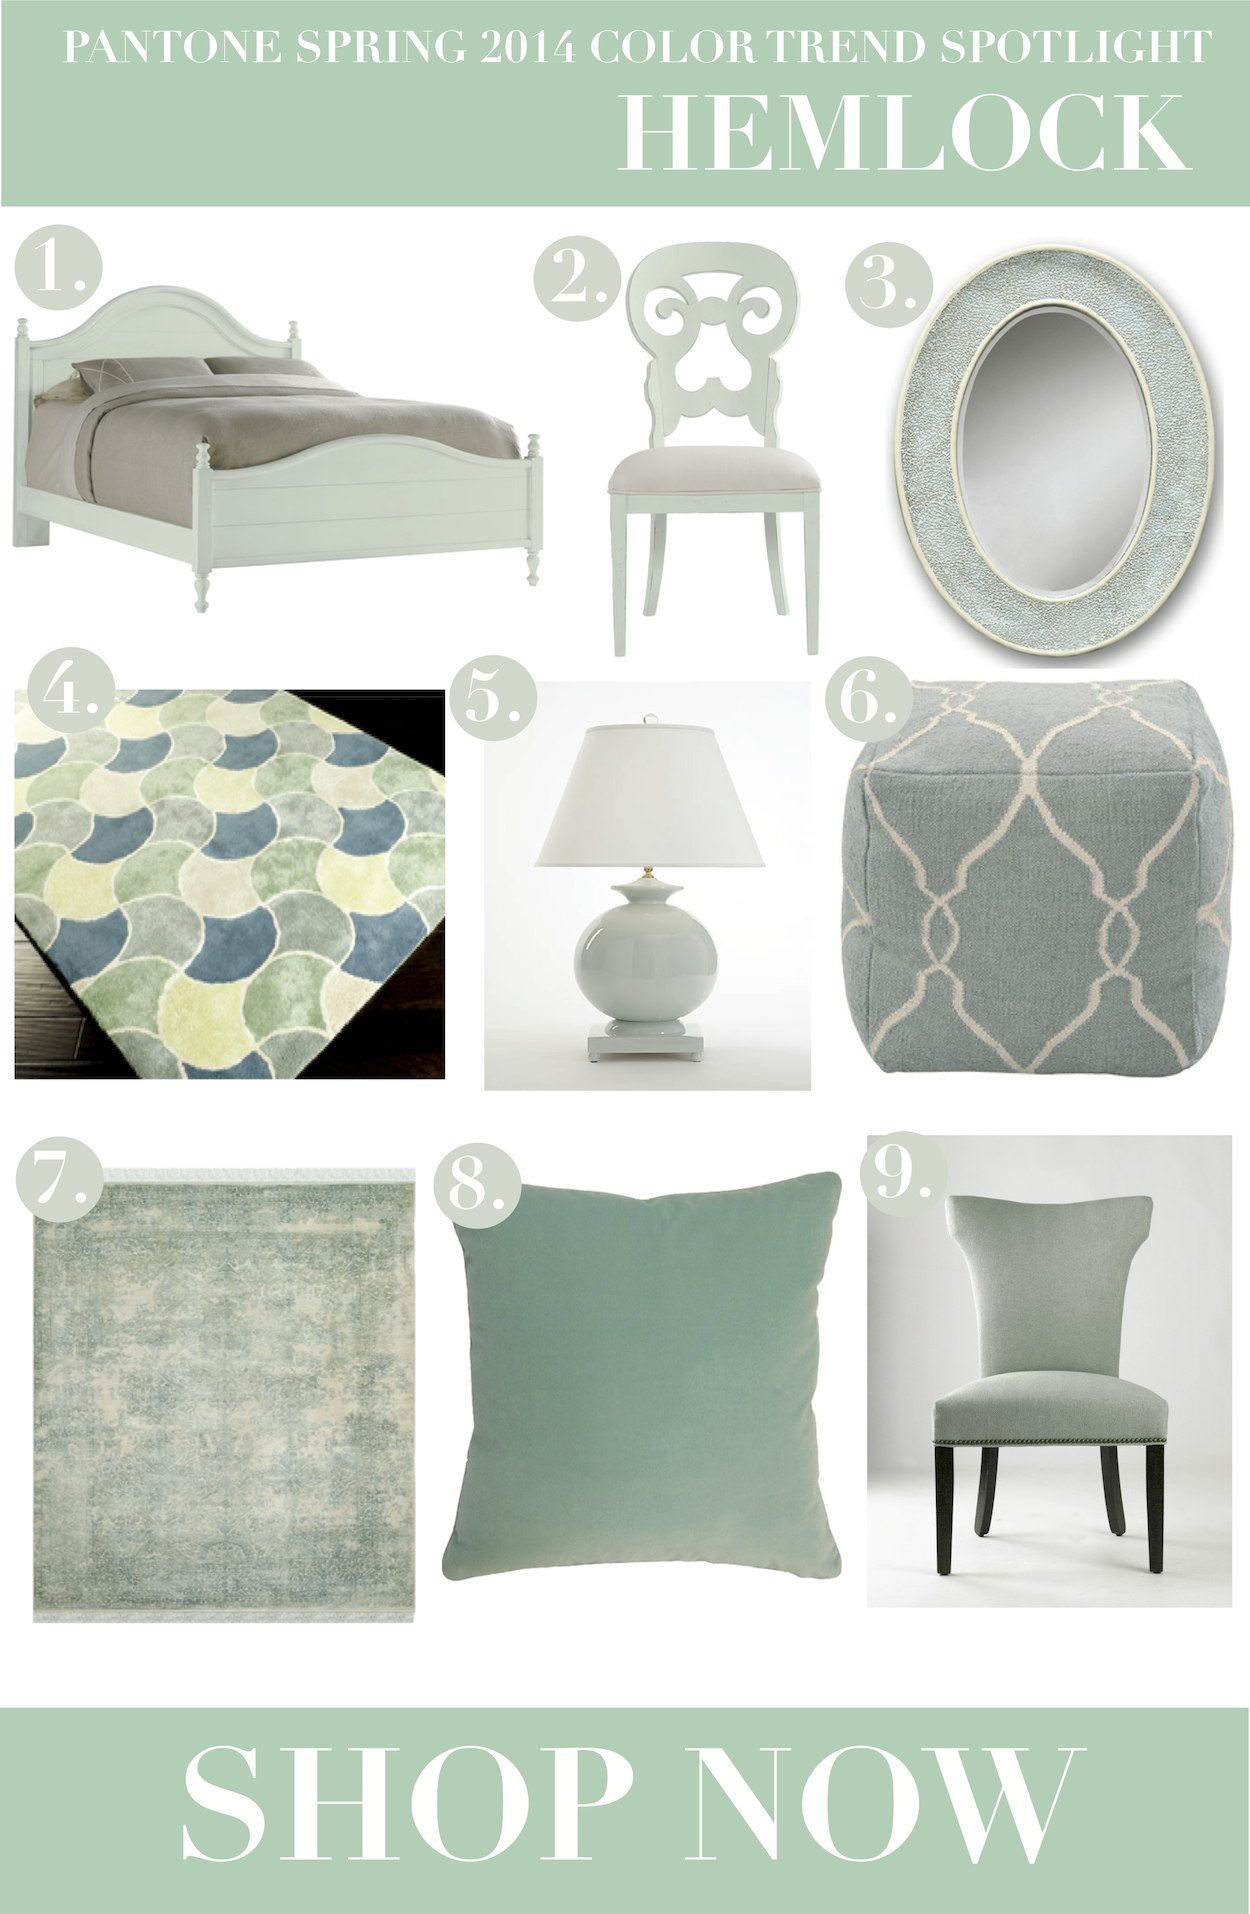 Spring 2014 Home Decor Color Trend HemlockWhen It Comes To Trends In The Year Is Still Young Only Time Will Tell Which Pieces Prove Be